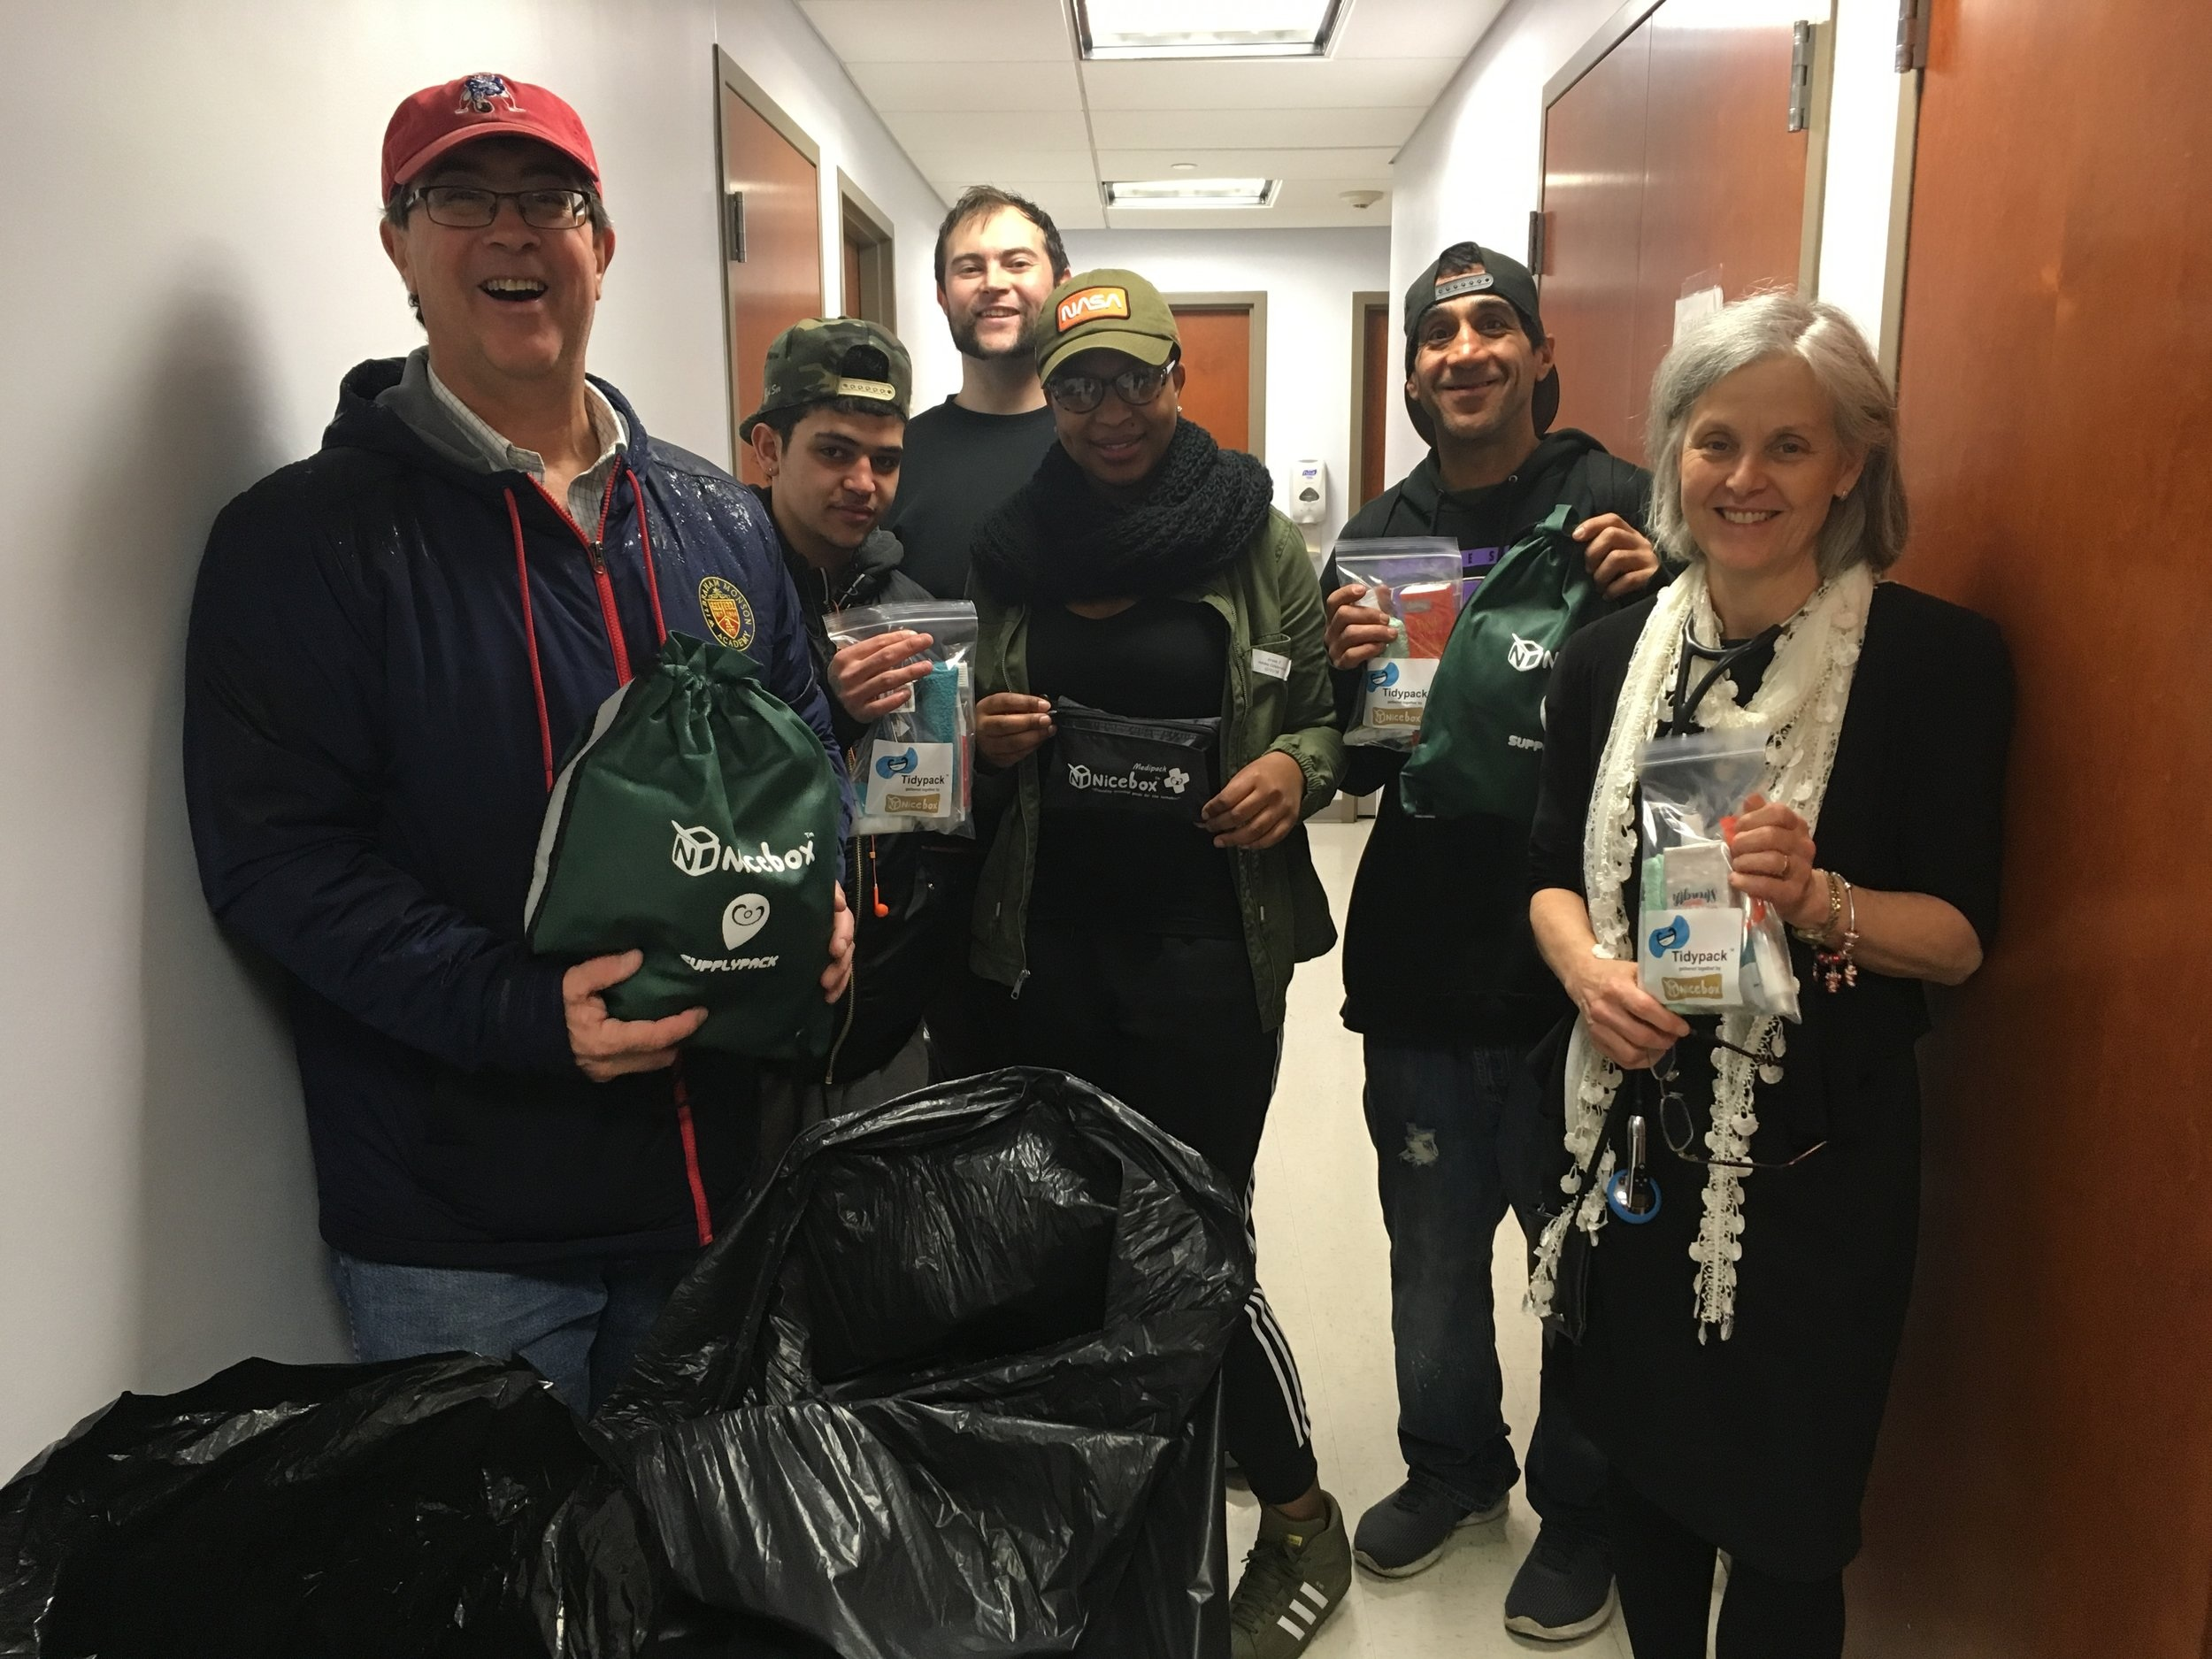 Some of our volunteers and friends delivering Supplypacks, Tidypacks, and Medipacks last winter.